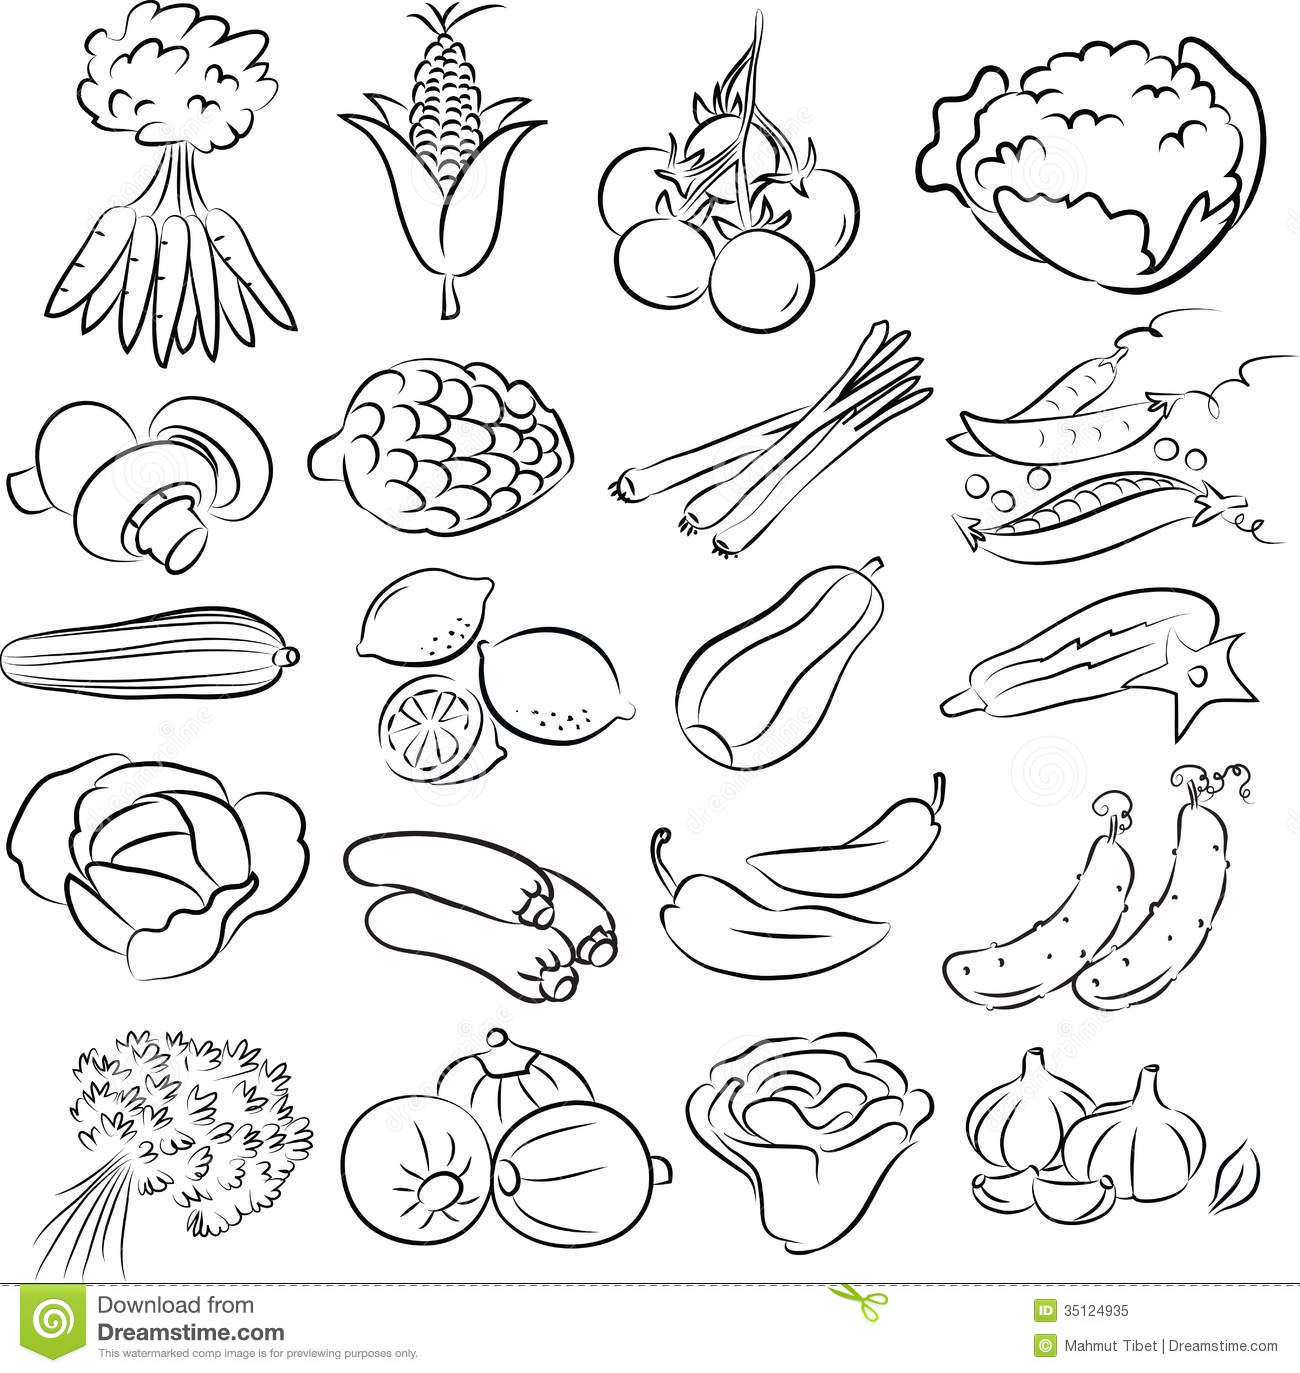 Line Drawing Zucchini : Vegetables set royalty free stock photo image